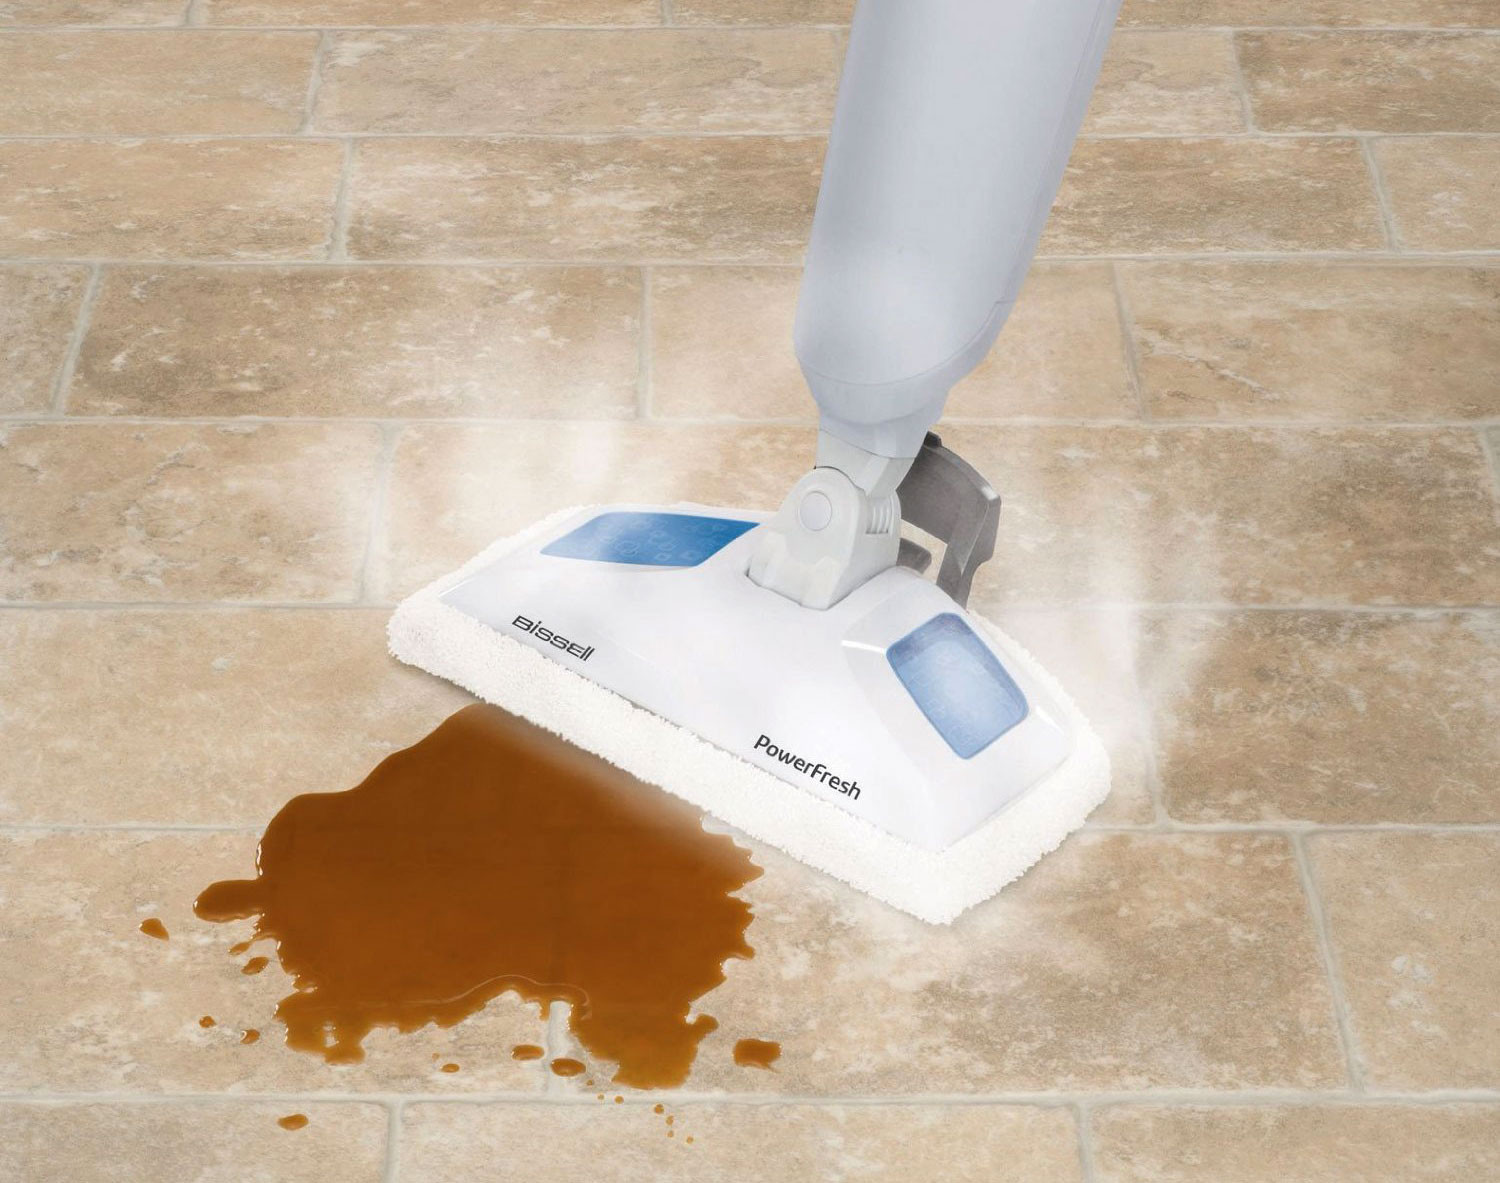 how to make hardwood floors not slippery of the 4 best steam mops in a3e8dac8 fd9f 4940 ad99 8094ad1403c3 811cn2sa0wl sl1500